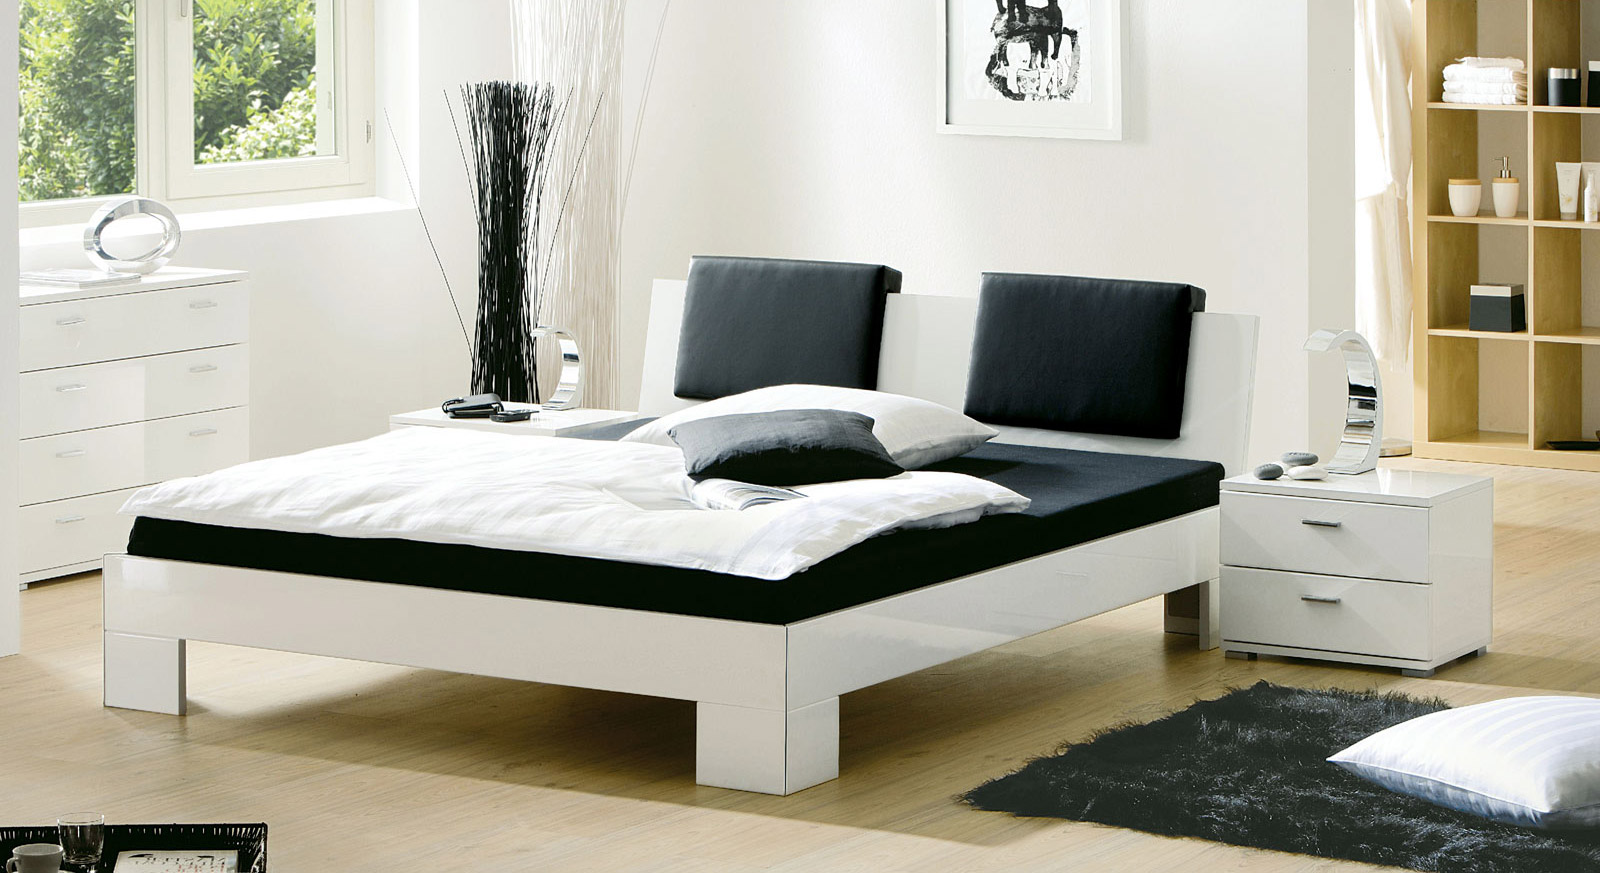 bettkopcteil mit stoff selber machen. Black Bedroom Furniture Sets. Home Design Ideas